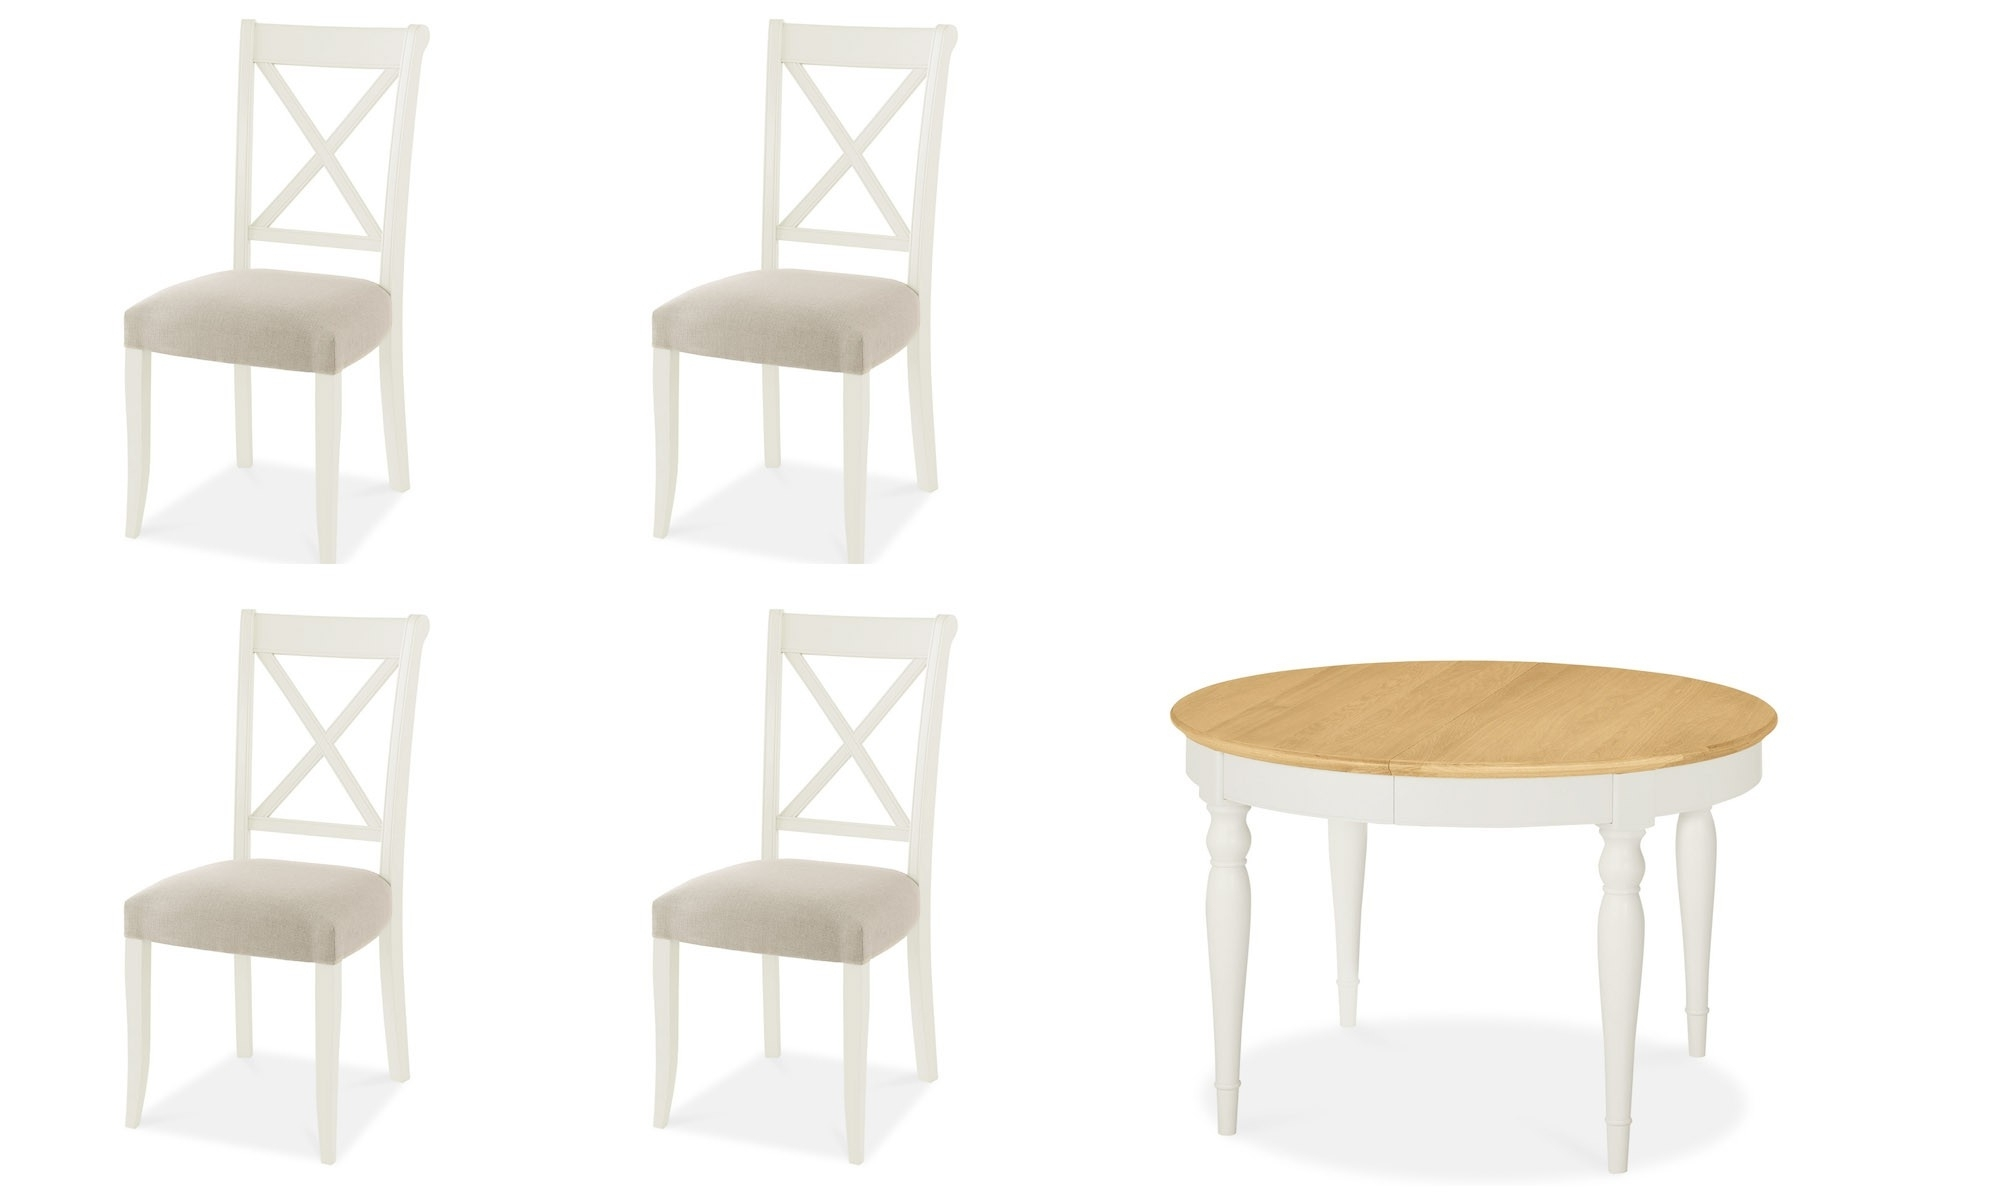 Georgie – Round Extending Dining Table And Chairs In Cream – Oak Top With Regard To Most Up To Date Cream And Wood Dining Tables (View 19 of 25)